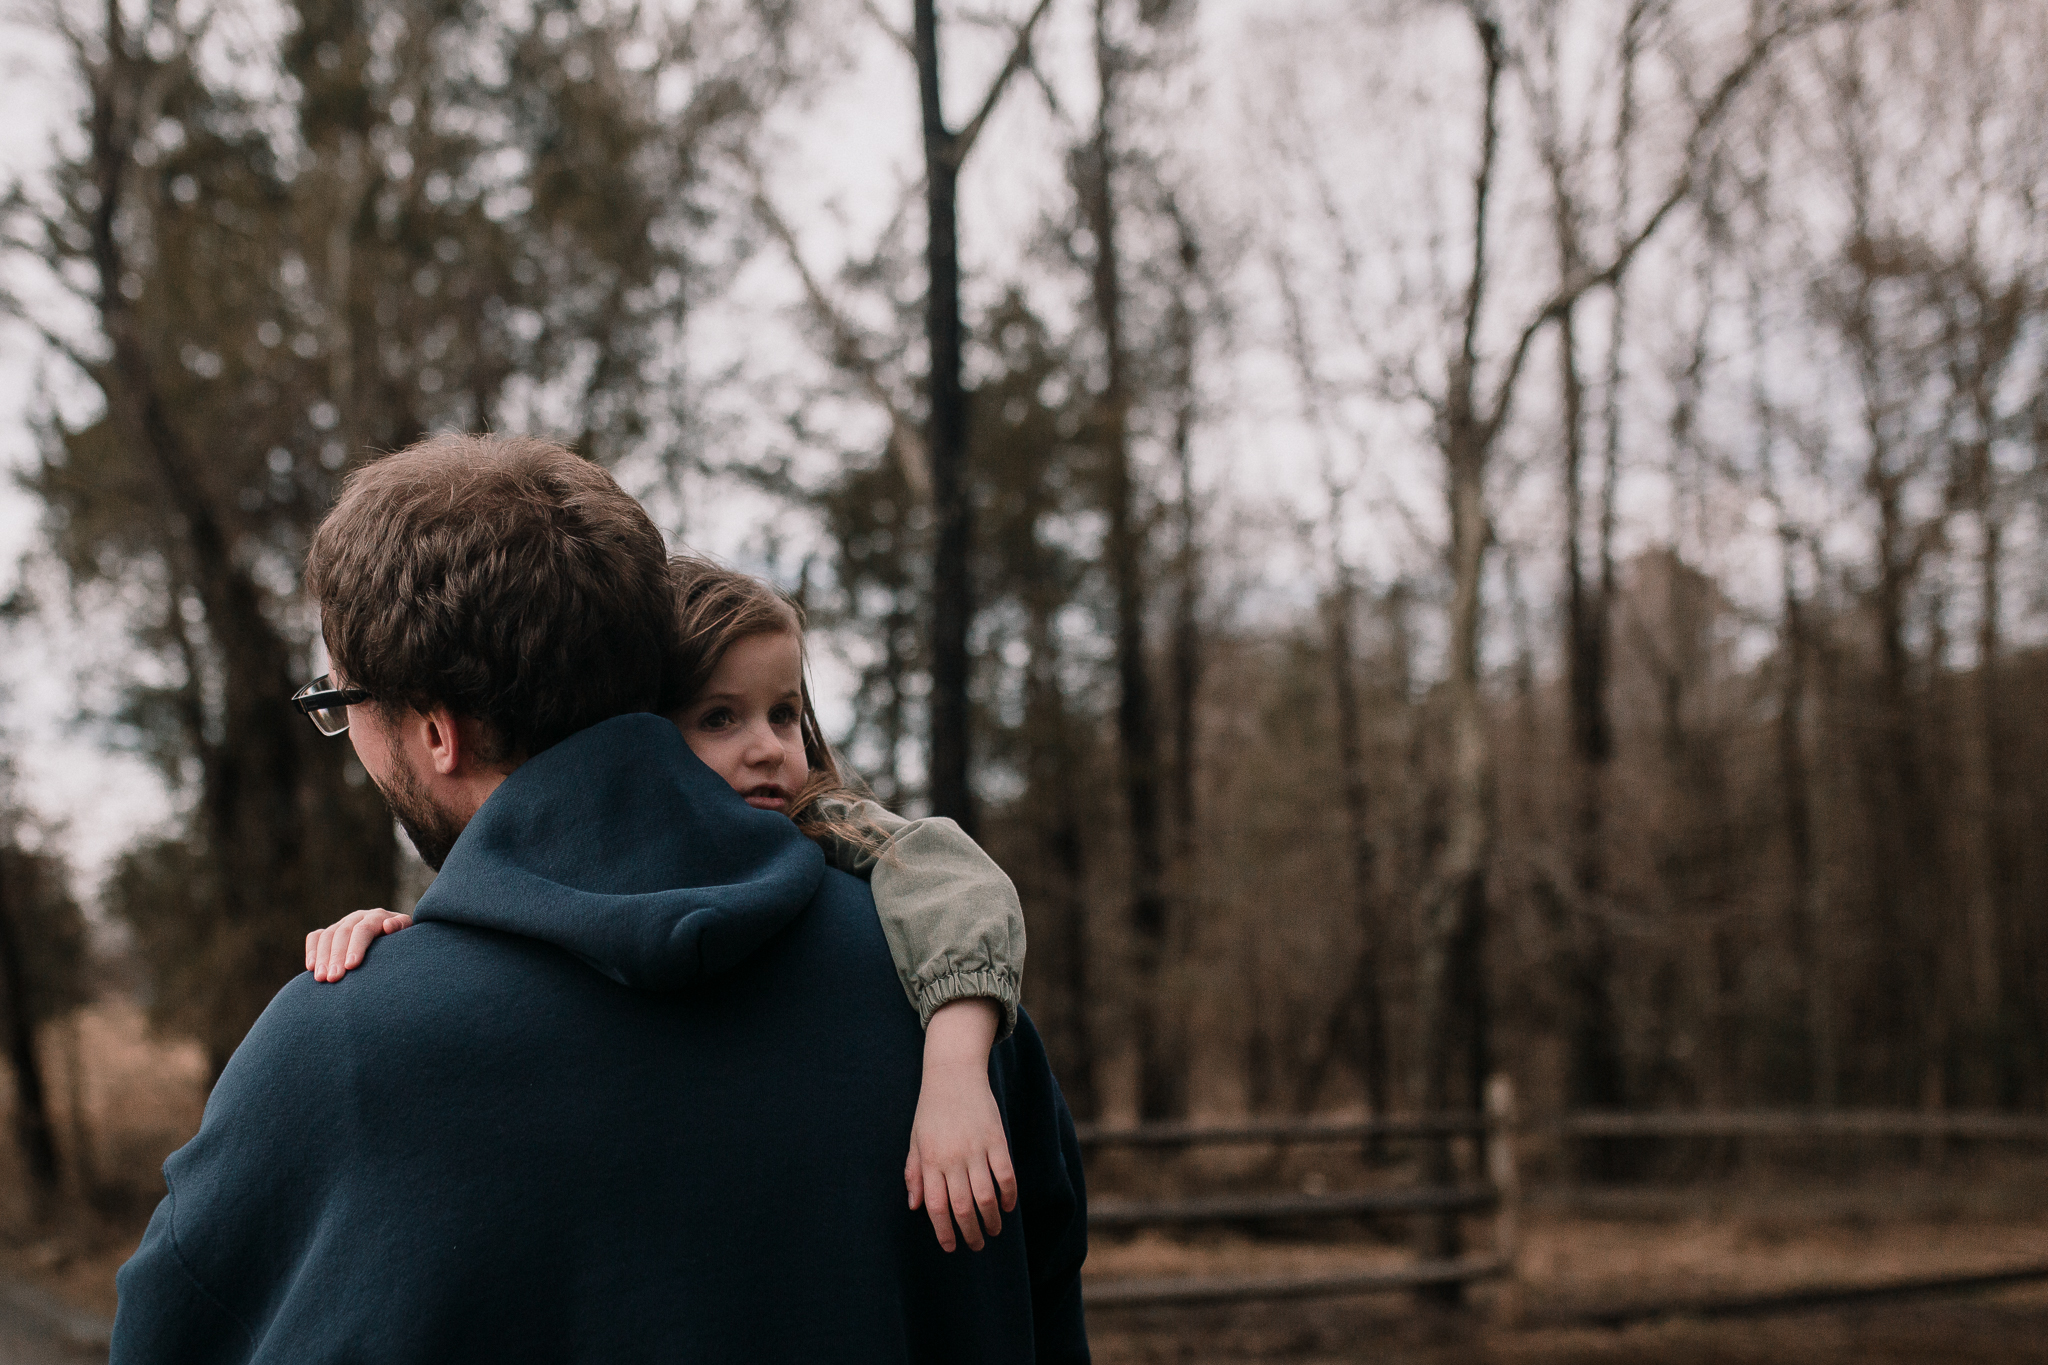 father daughter hug outdoor lifestyle documentary family Claude Moore Park Ashburn Loudoun northern Virginia  childhood Marti Austin Photography